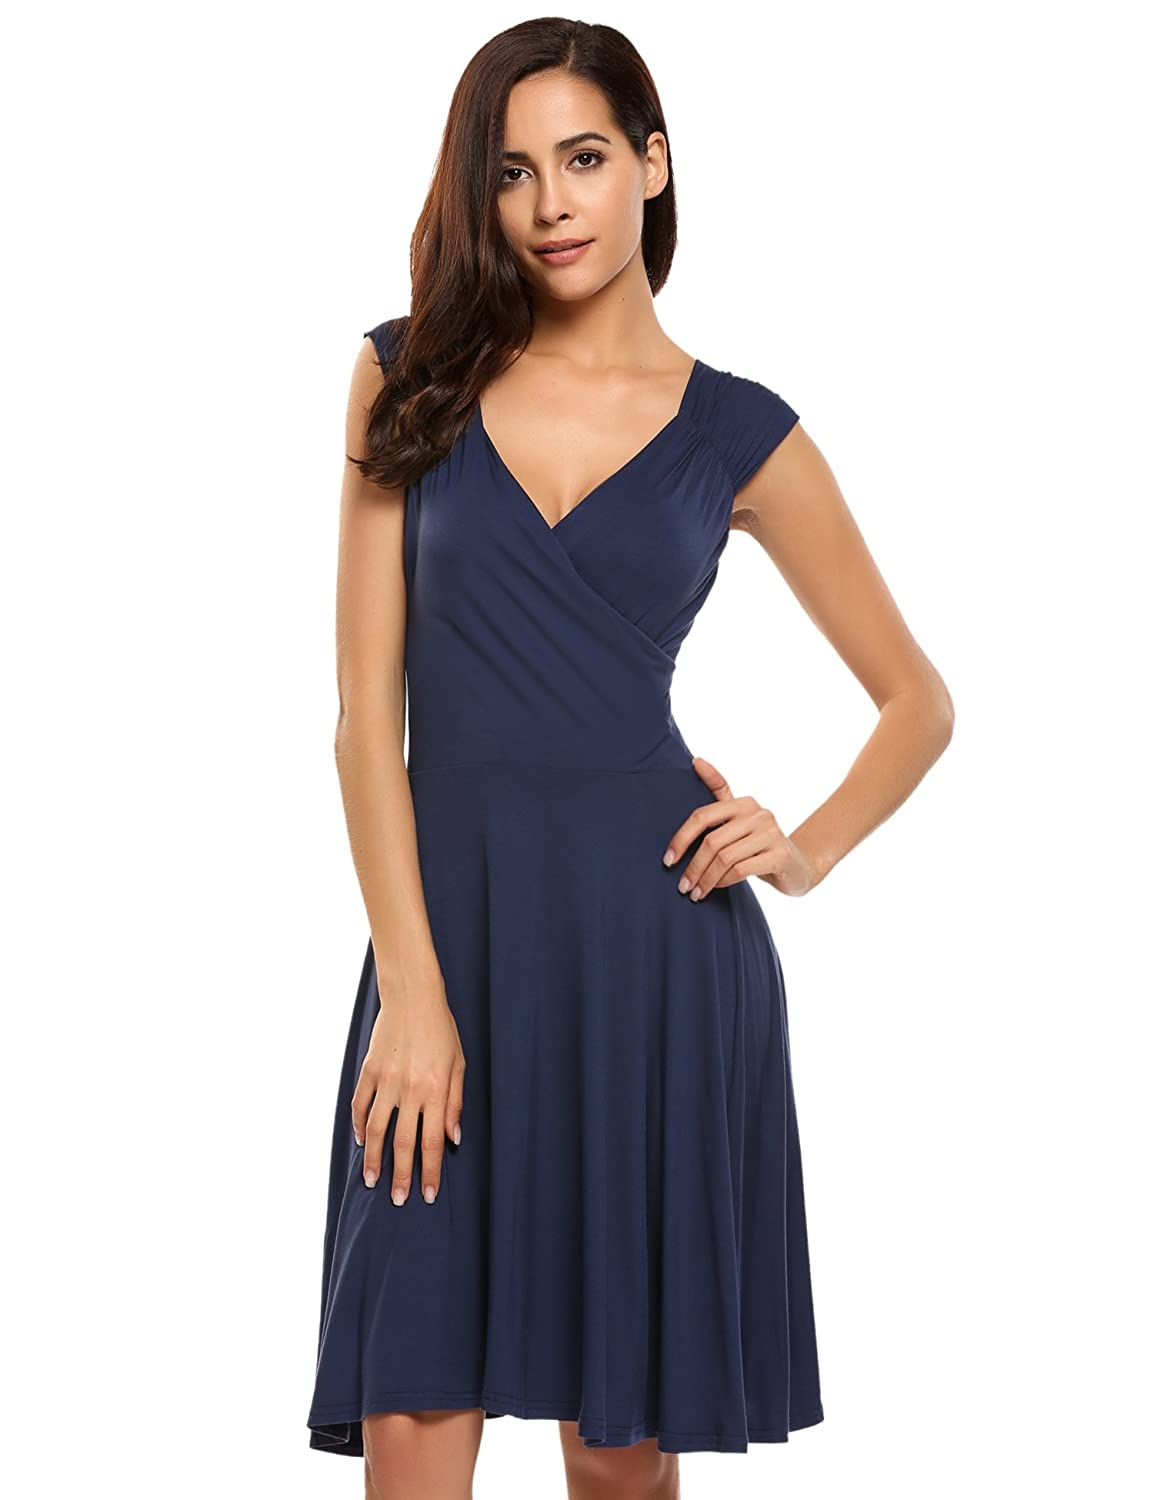 a8987bed19 Top 10 wholesale Navy Blue Deep V Dress - Chinabrands.com